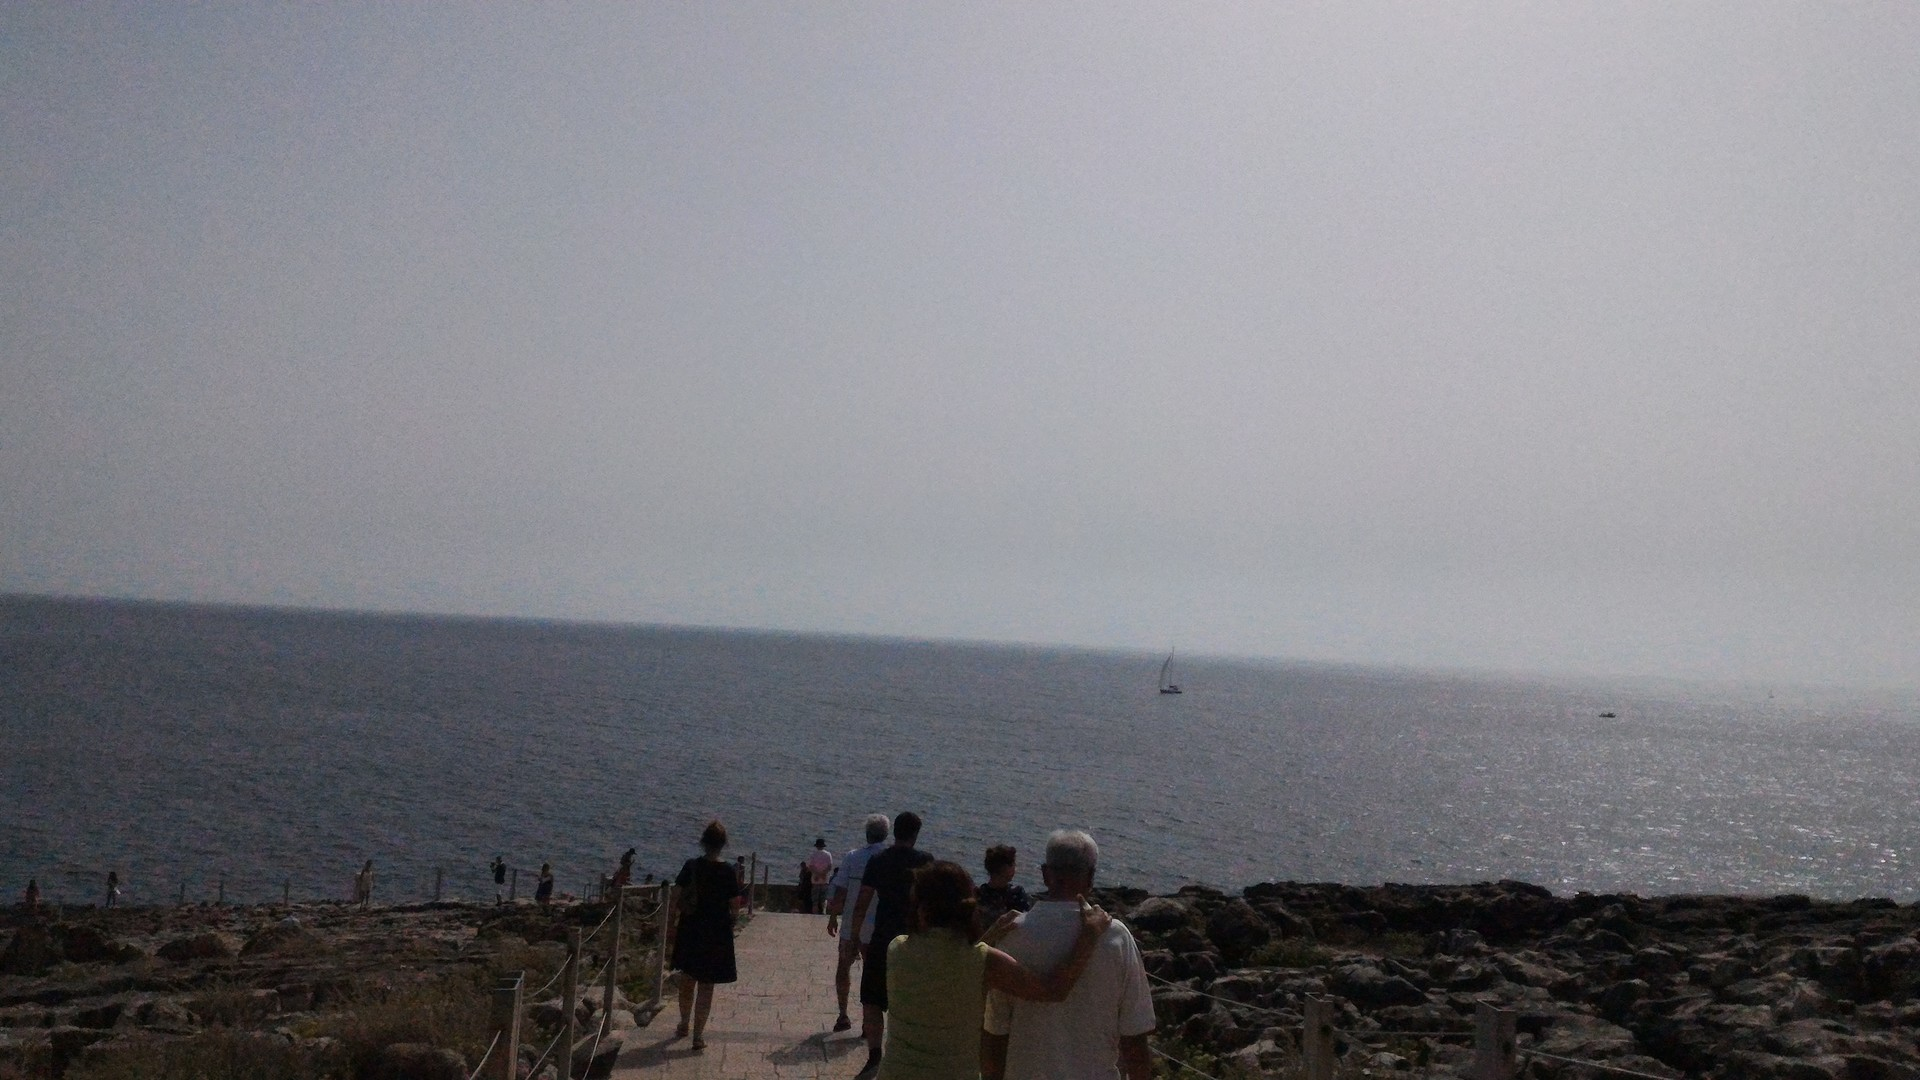 Hells mouth or Boca do Inferno